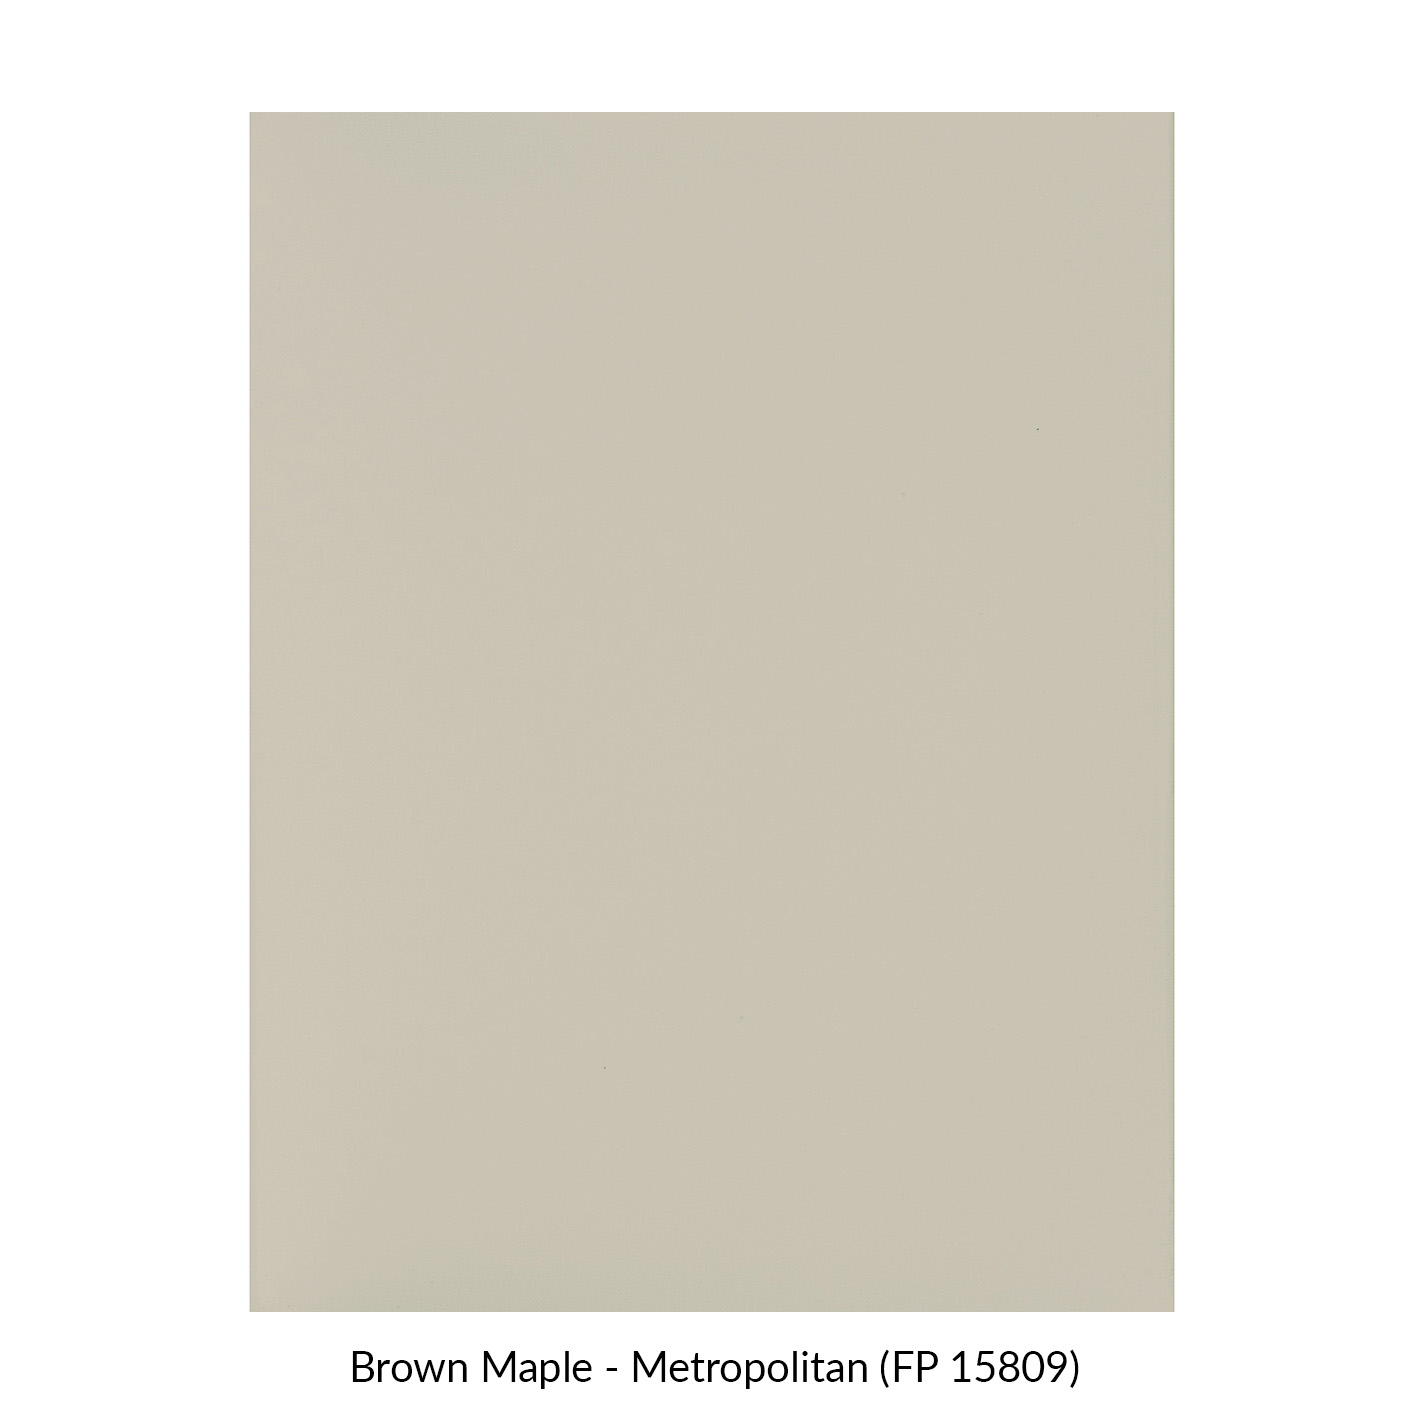 spectrum-brown-maple-metropolitan-fp-15809.jpg